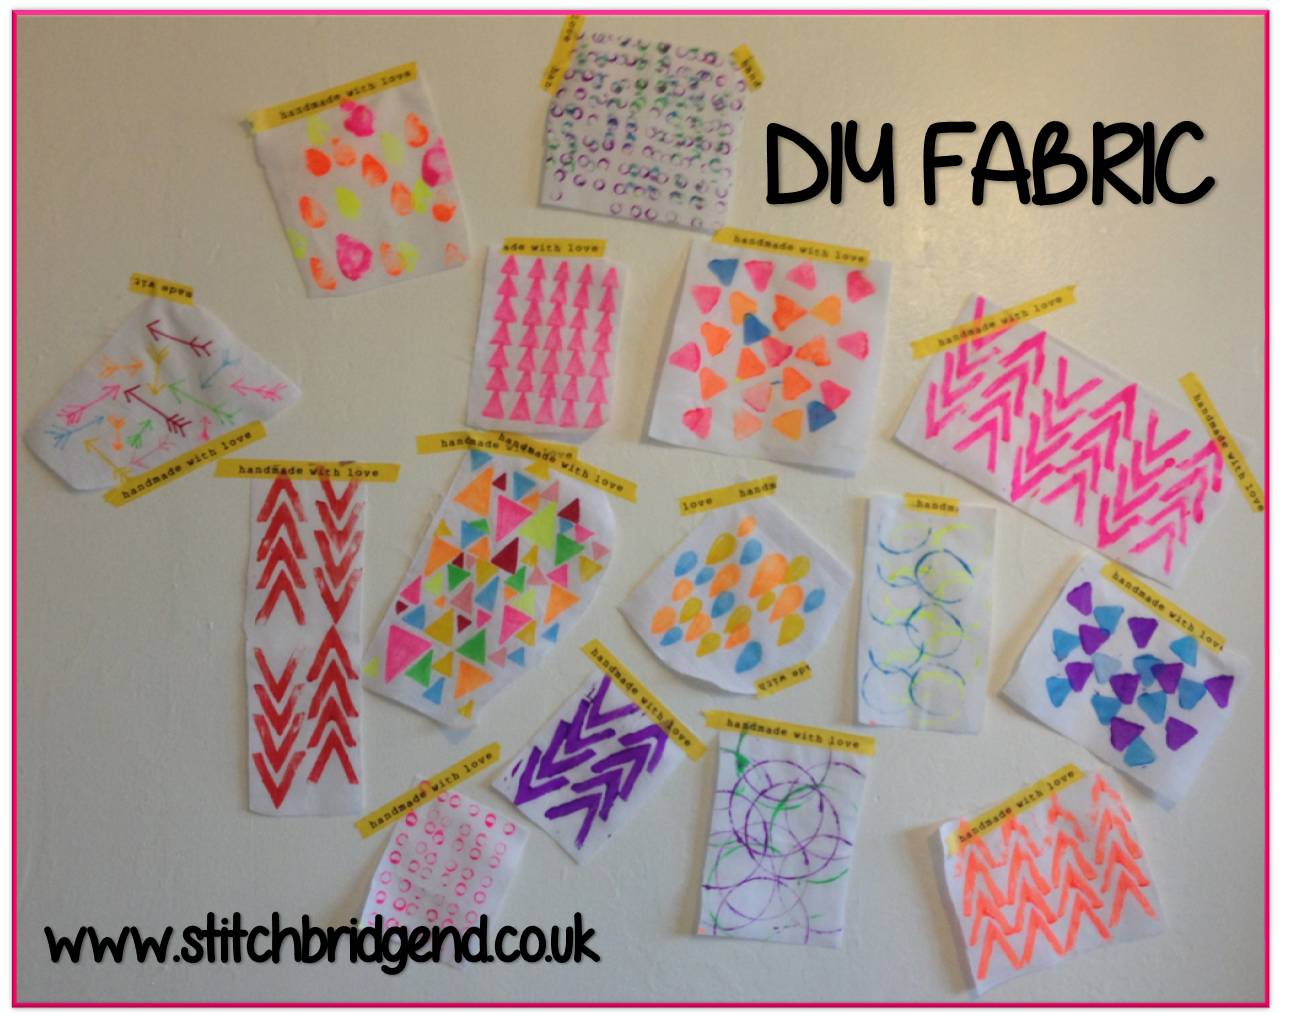 The Ramblings Of A Fairy Diy Fabric Series Part One